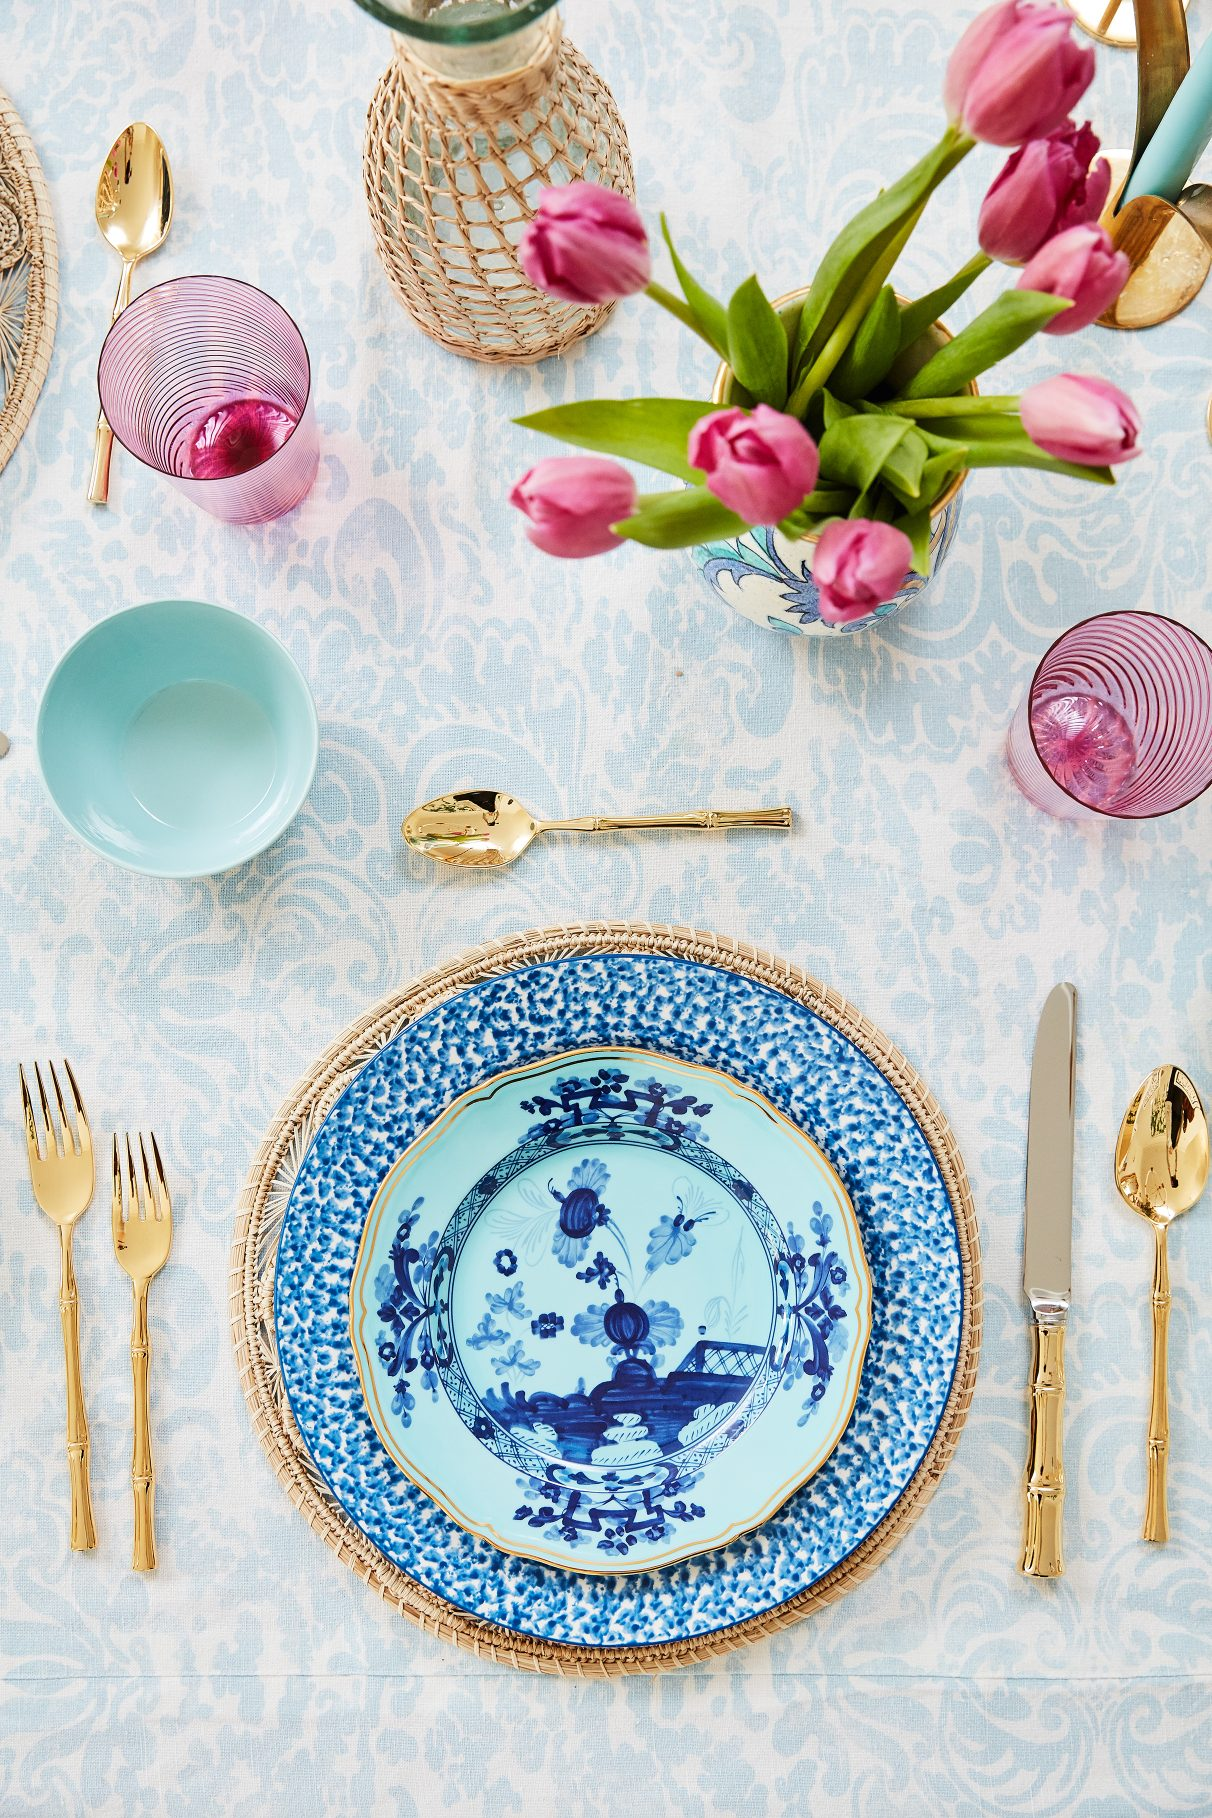 Lagniappe Project: Flowers and table setting